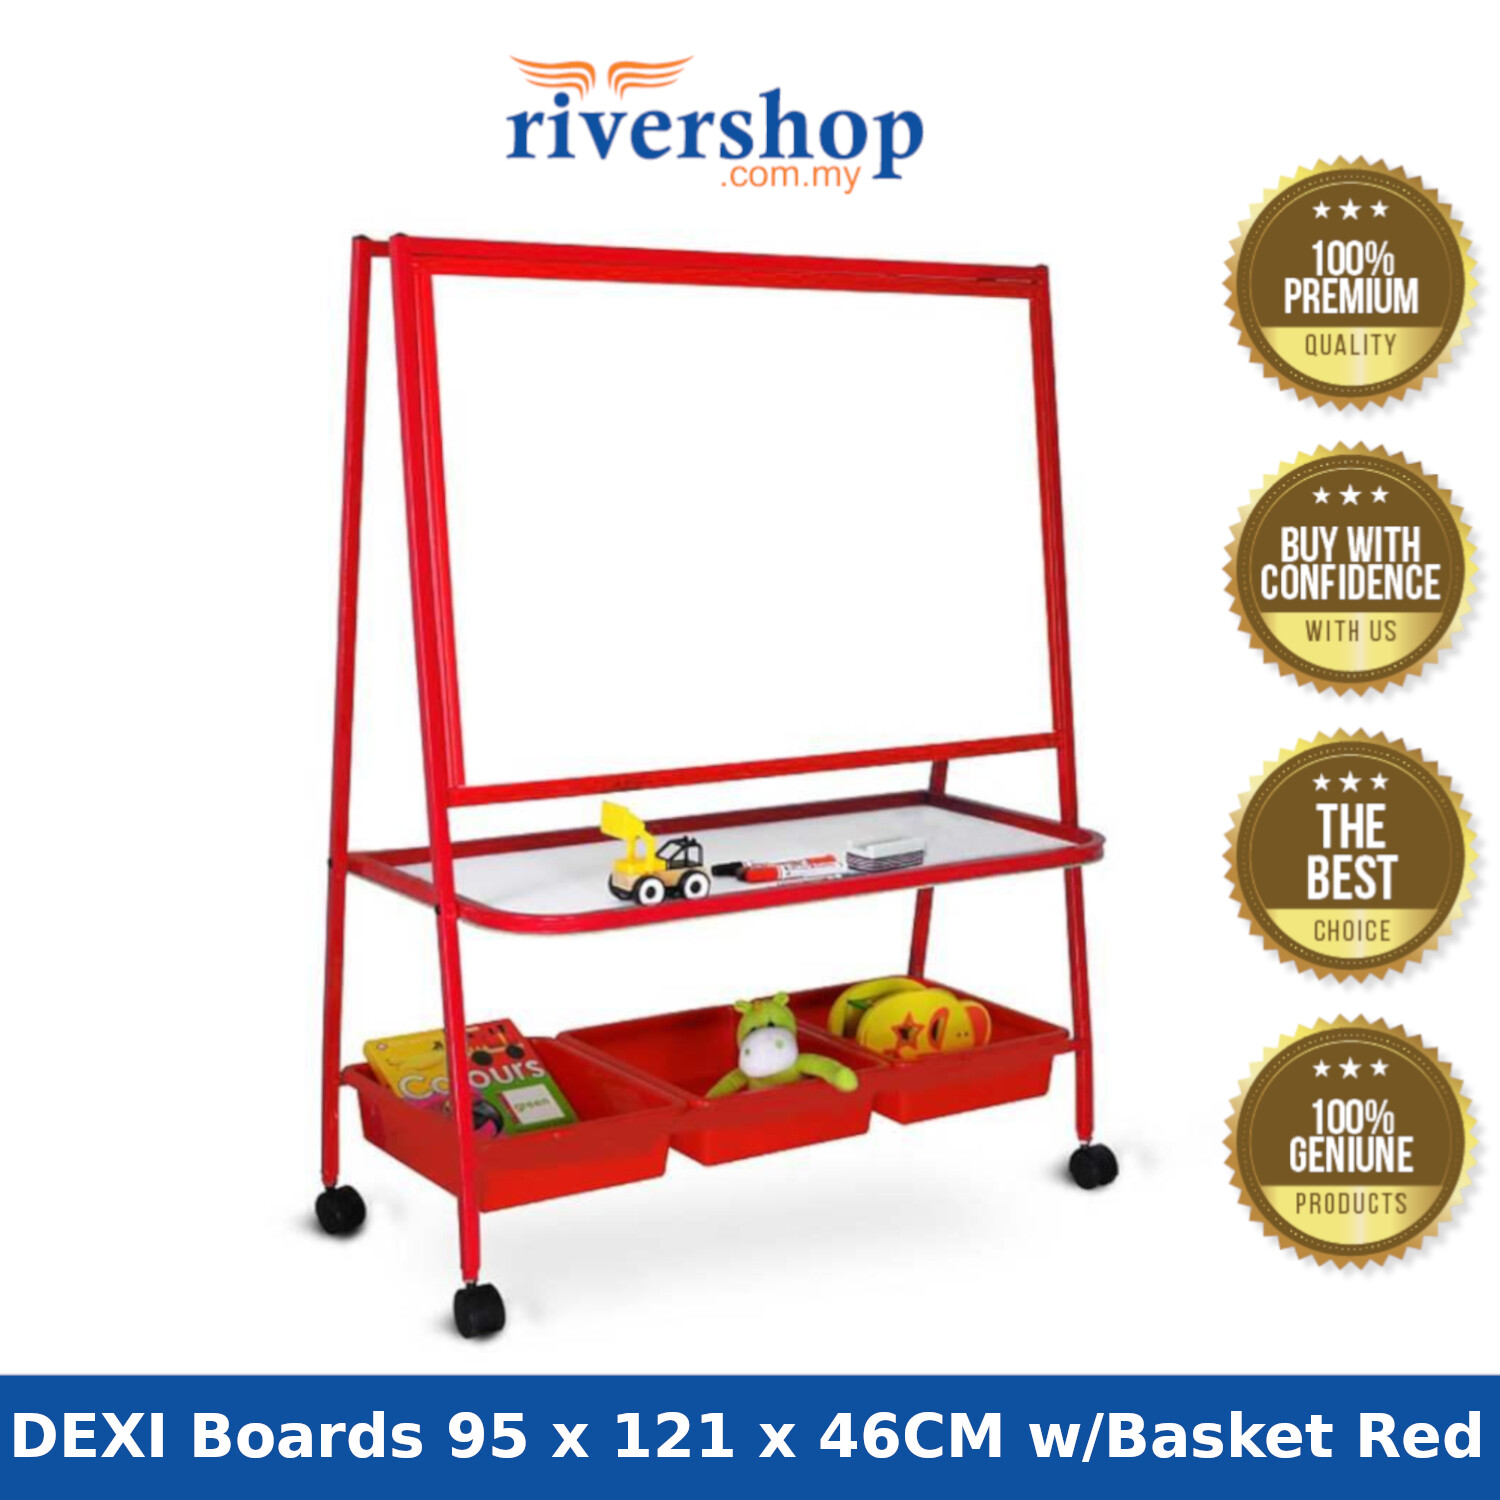 WP-K3S DEXI Boards 95 x 121 x 46CM 4 Castors Single Sided Magnetic Whiteboard with 3 Baskets (Red/Blue)